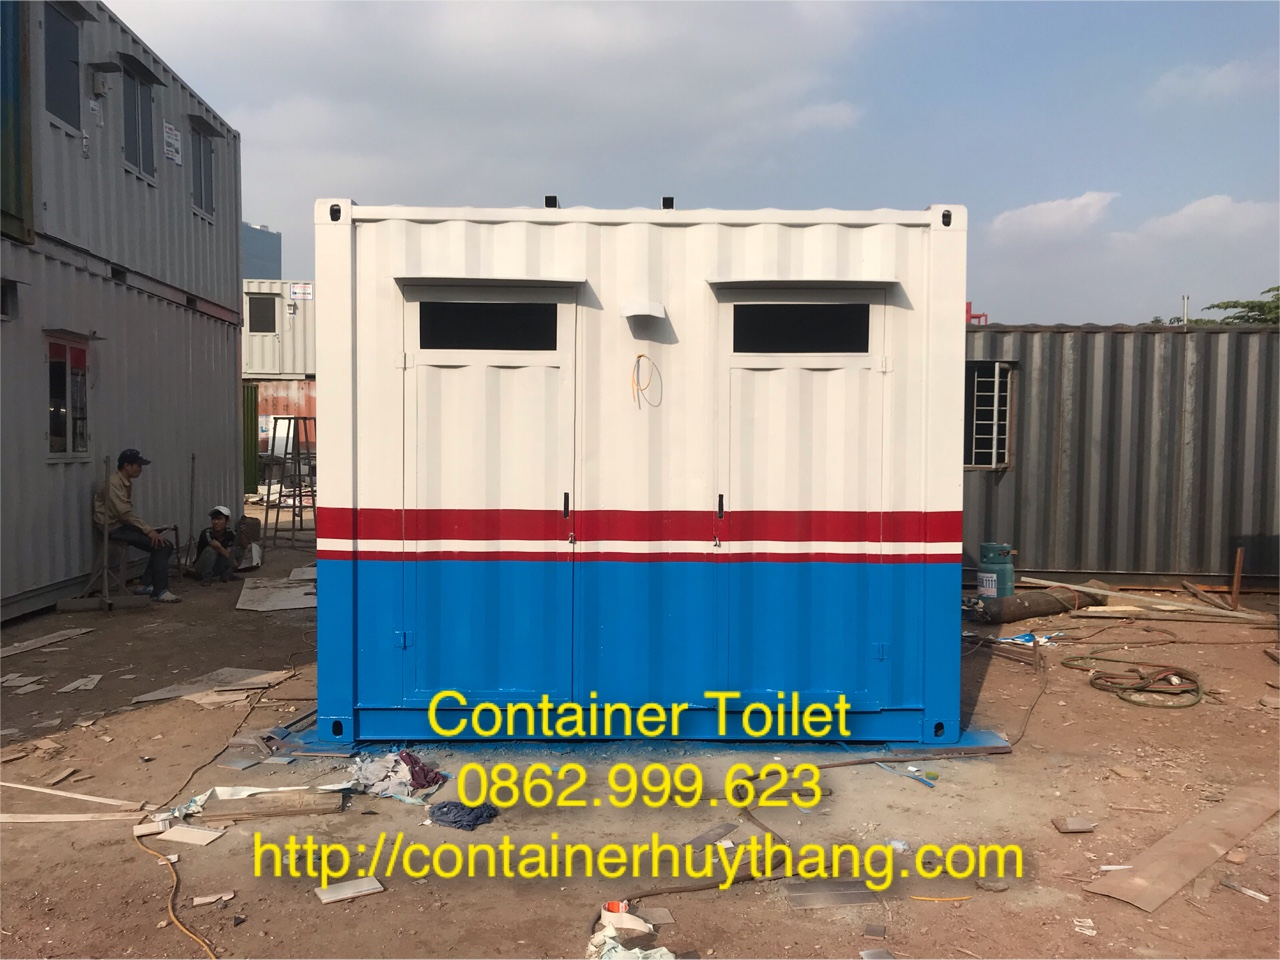 Container toilet.jpg